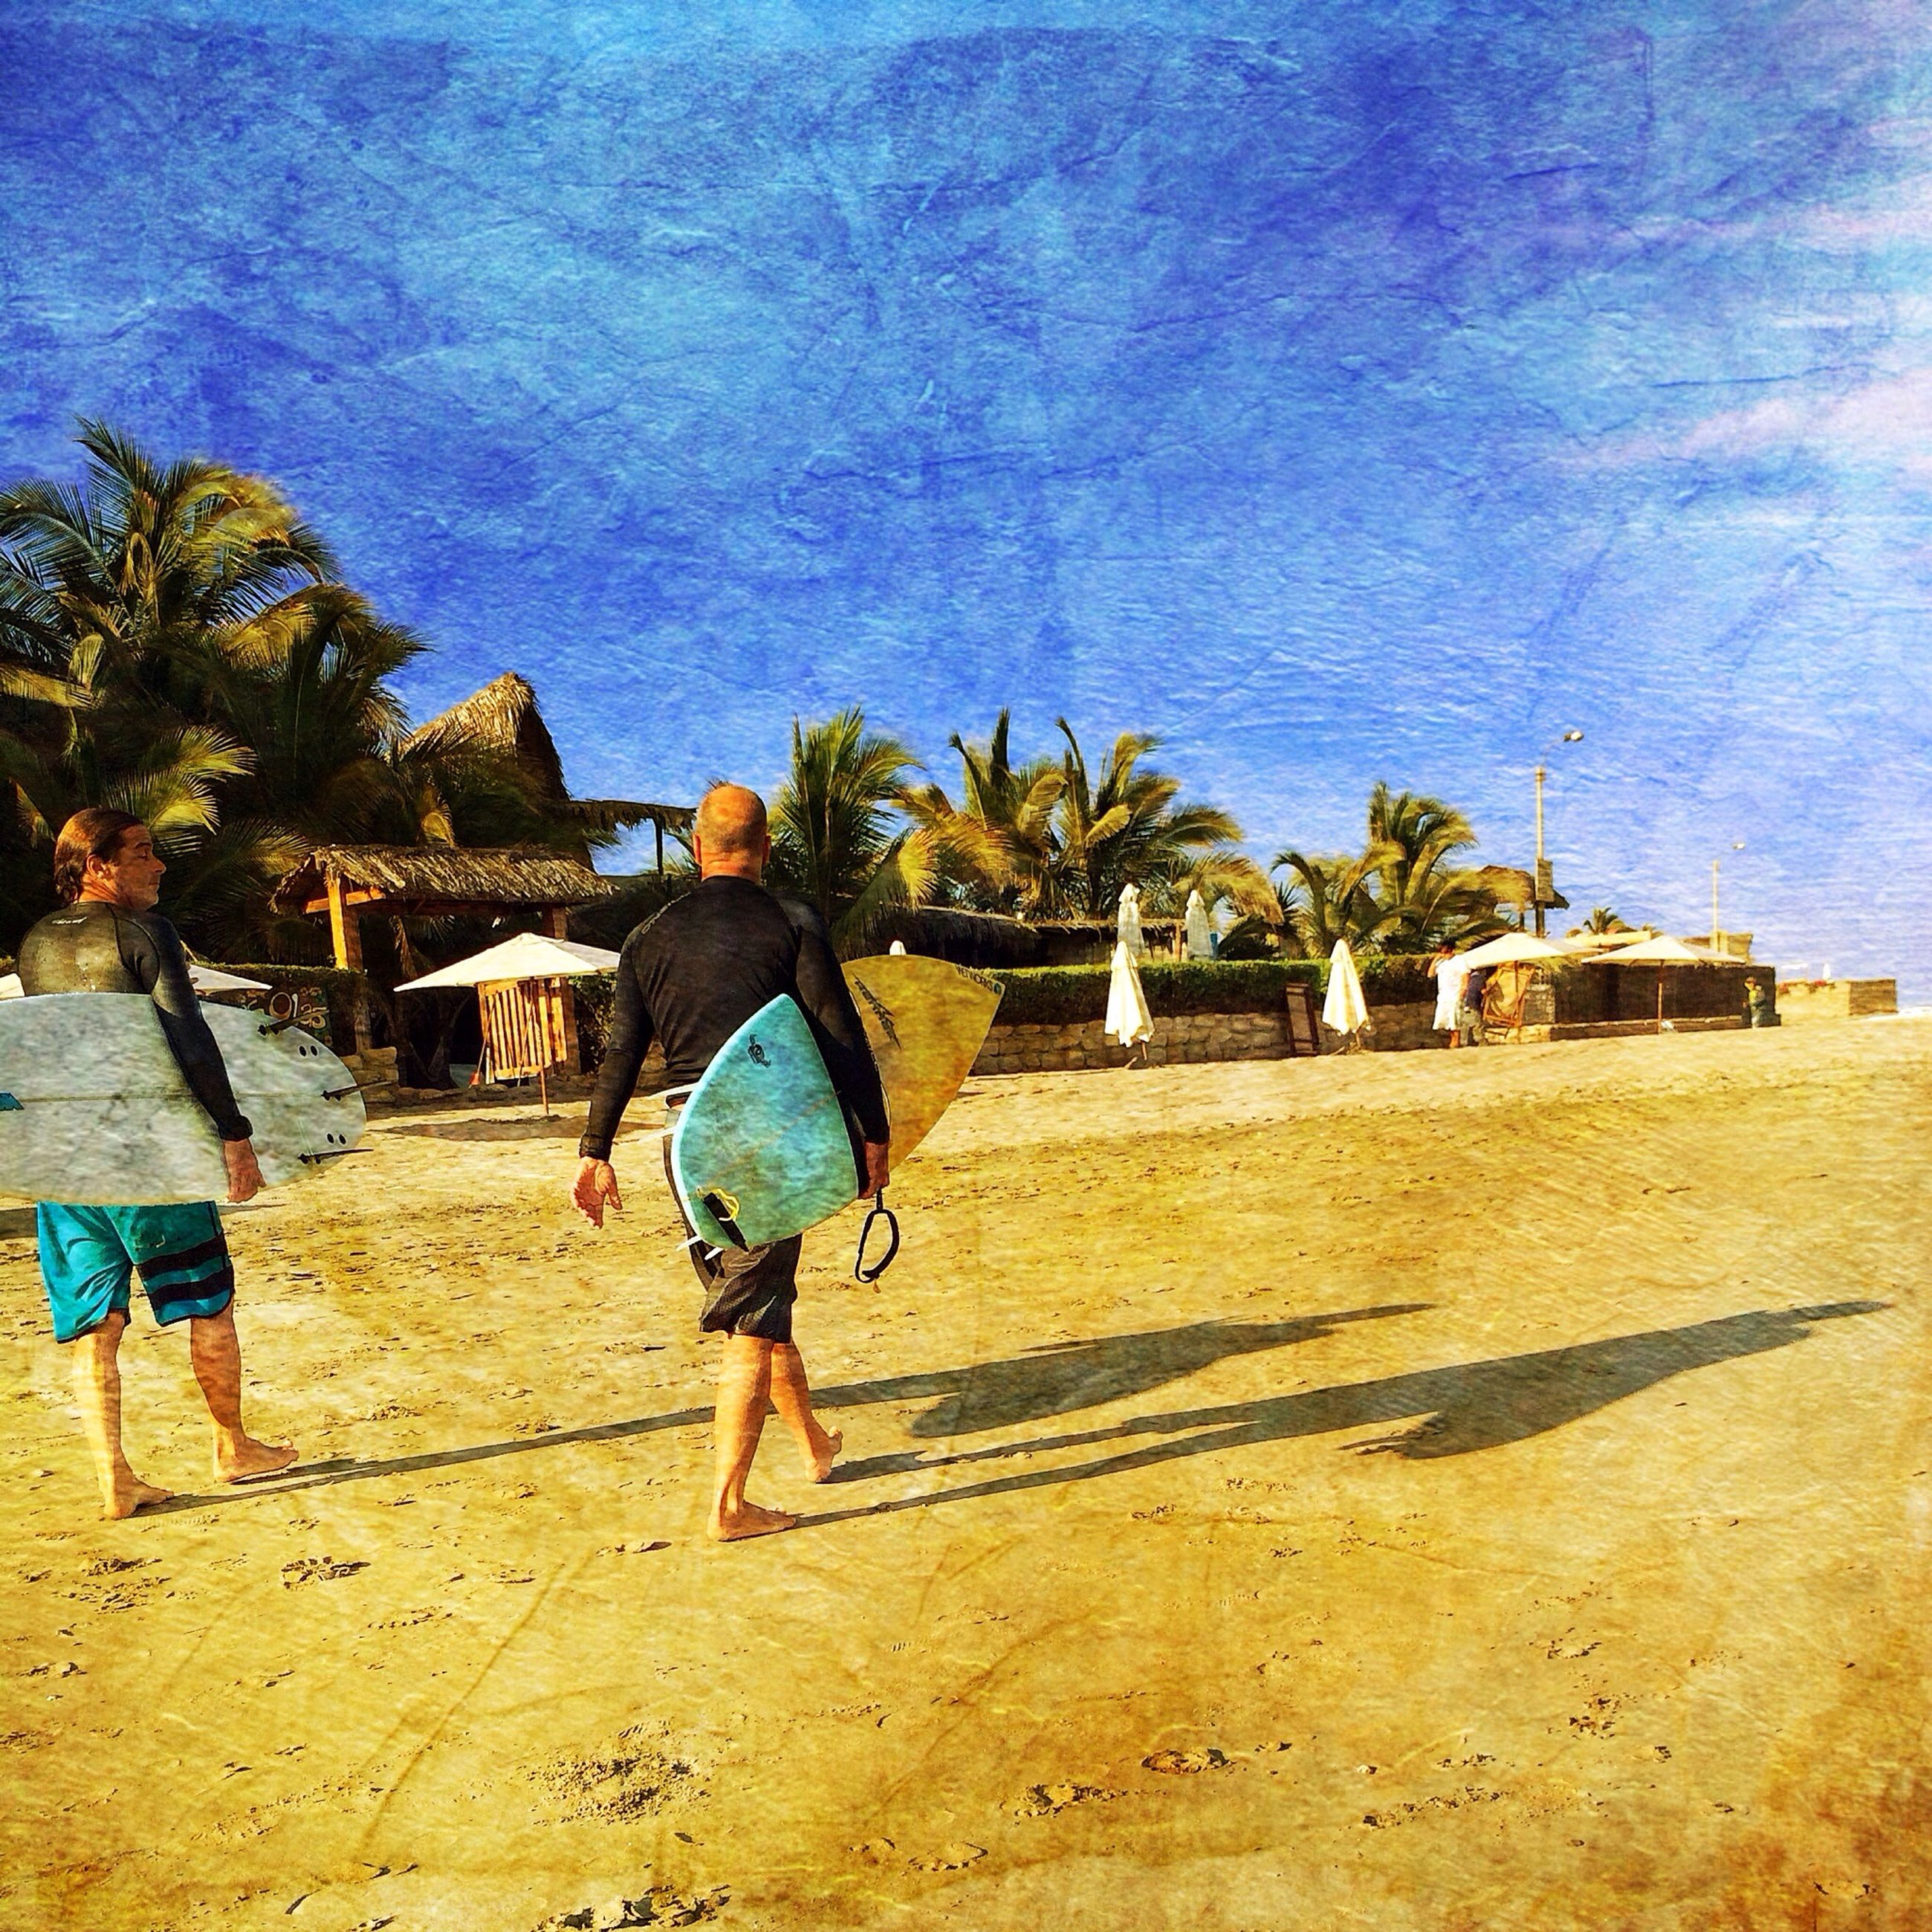 beach, sand, lifestyles, leisure activity, built structure, architecture, building exterior, blue, full length, tree, person, rear view, water, sky, men, sunlight, walking, shore